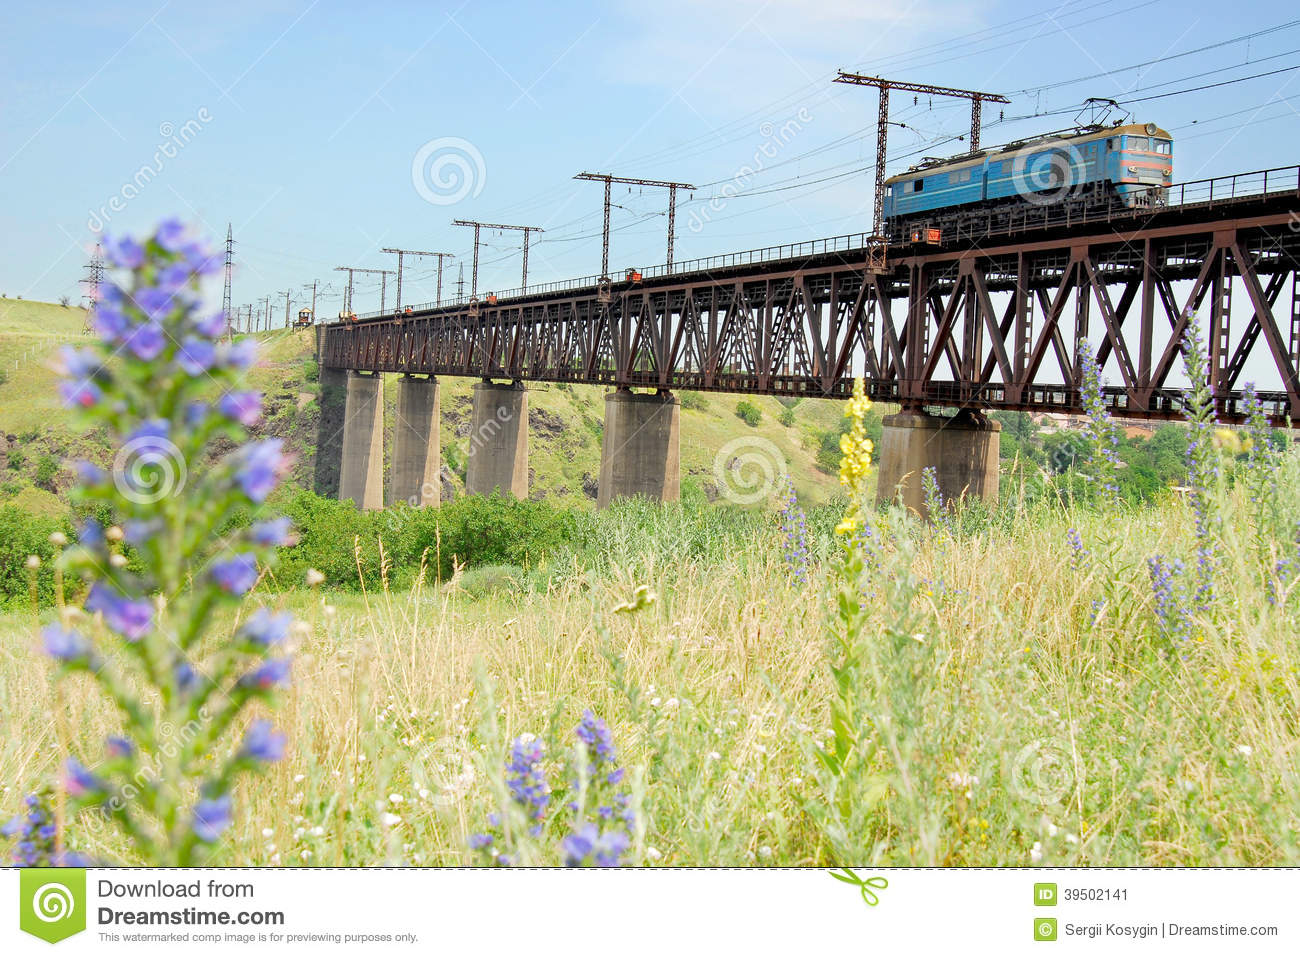 Flowers and locomotive